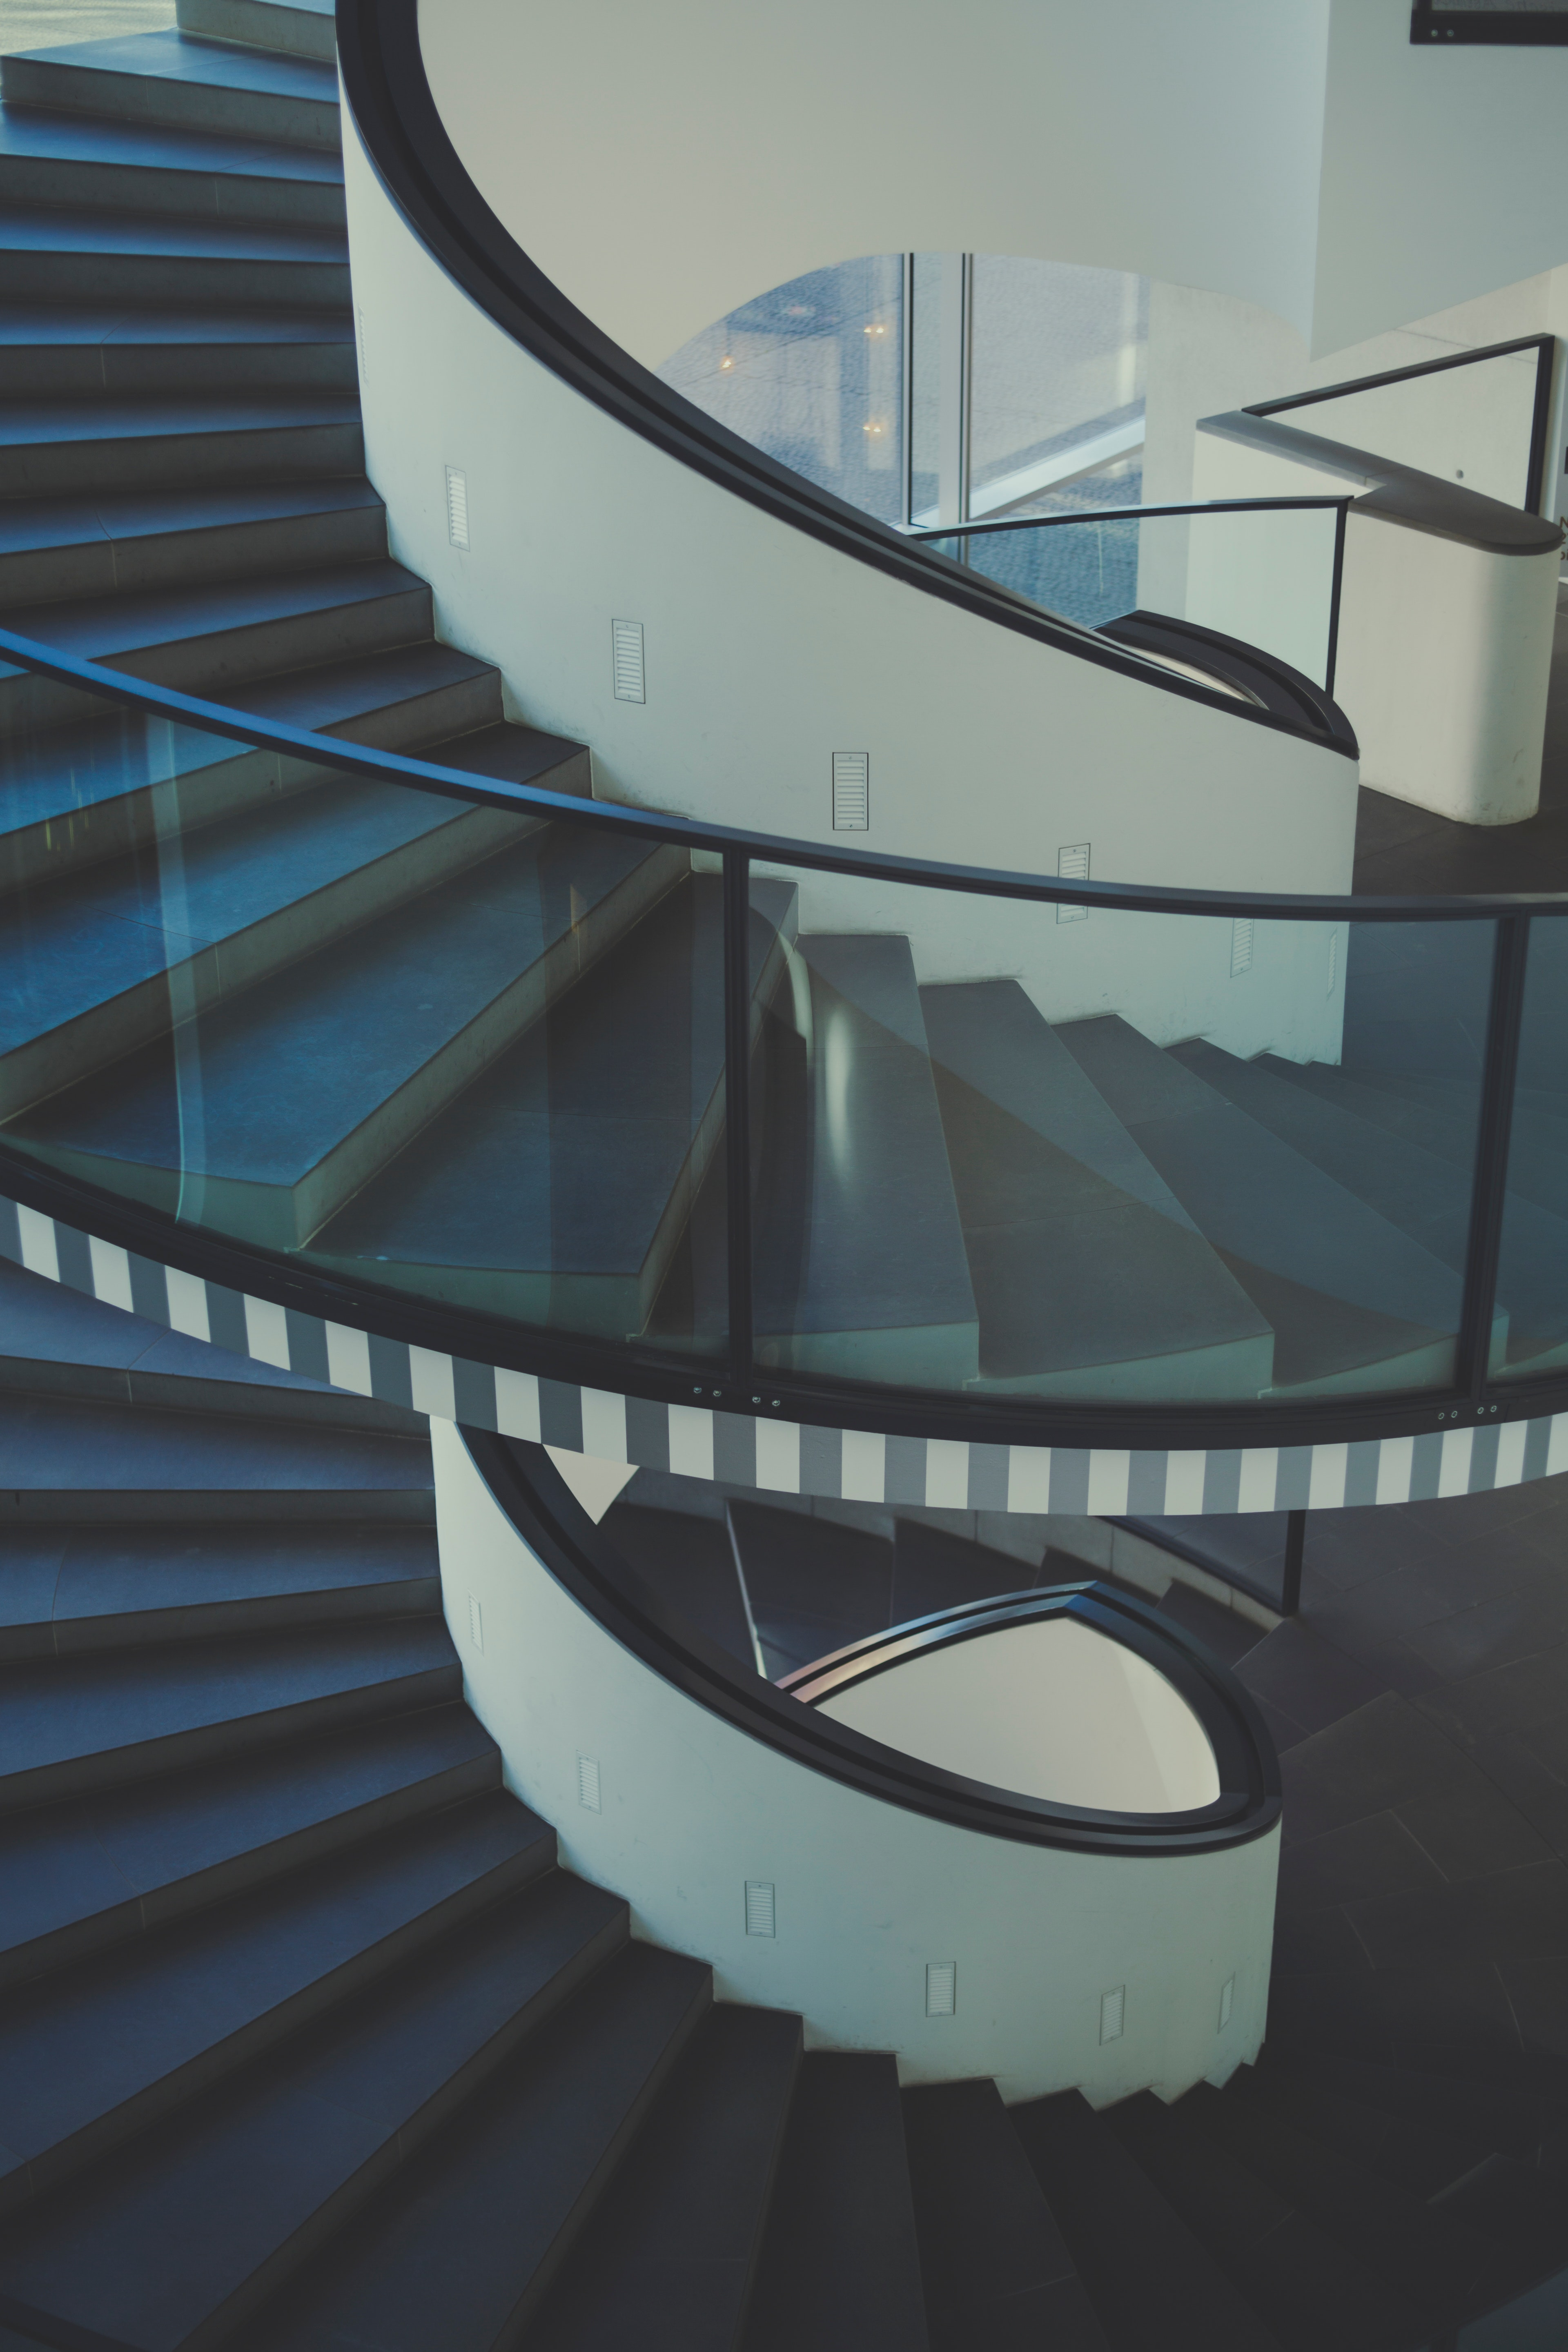 Black Frame Stairs, Architectural design, Modern, Structure, Steps, HQ Photo